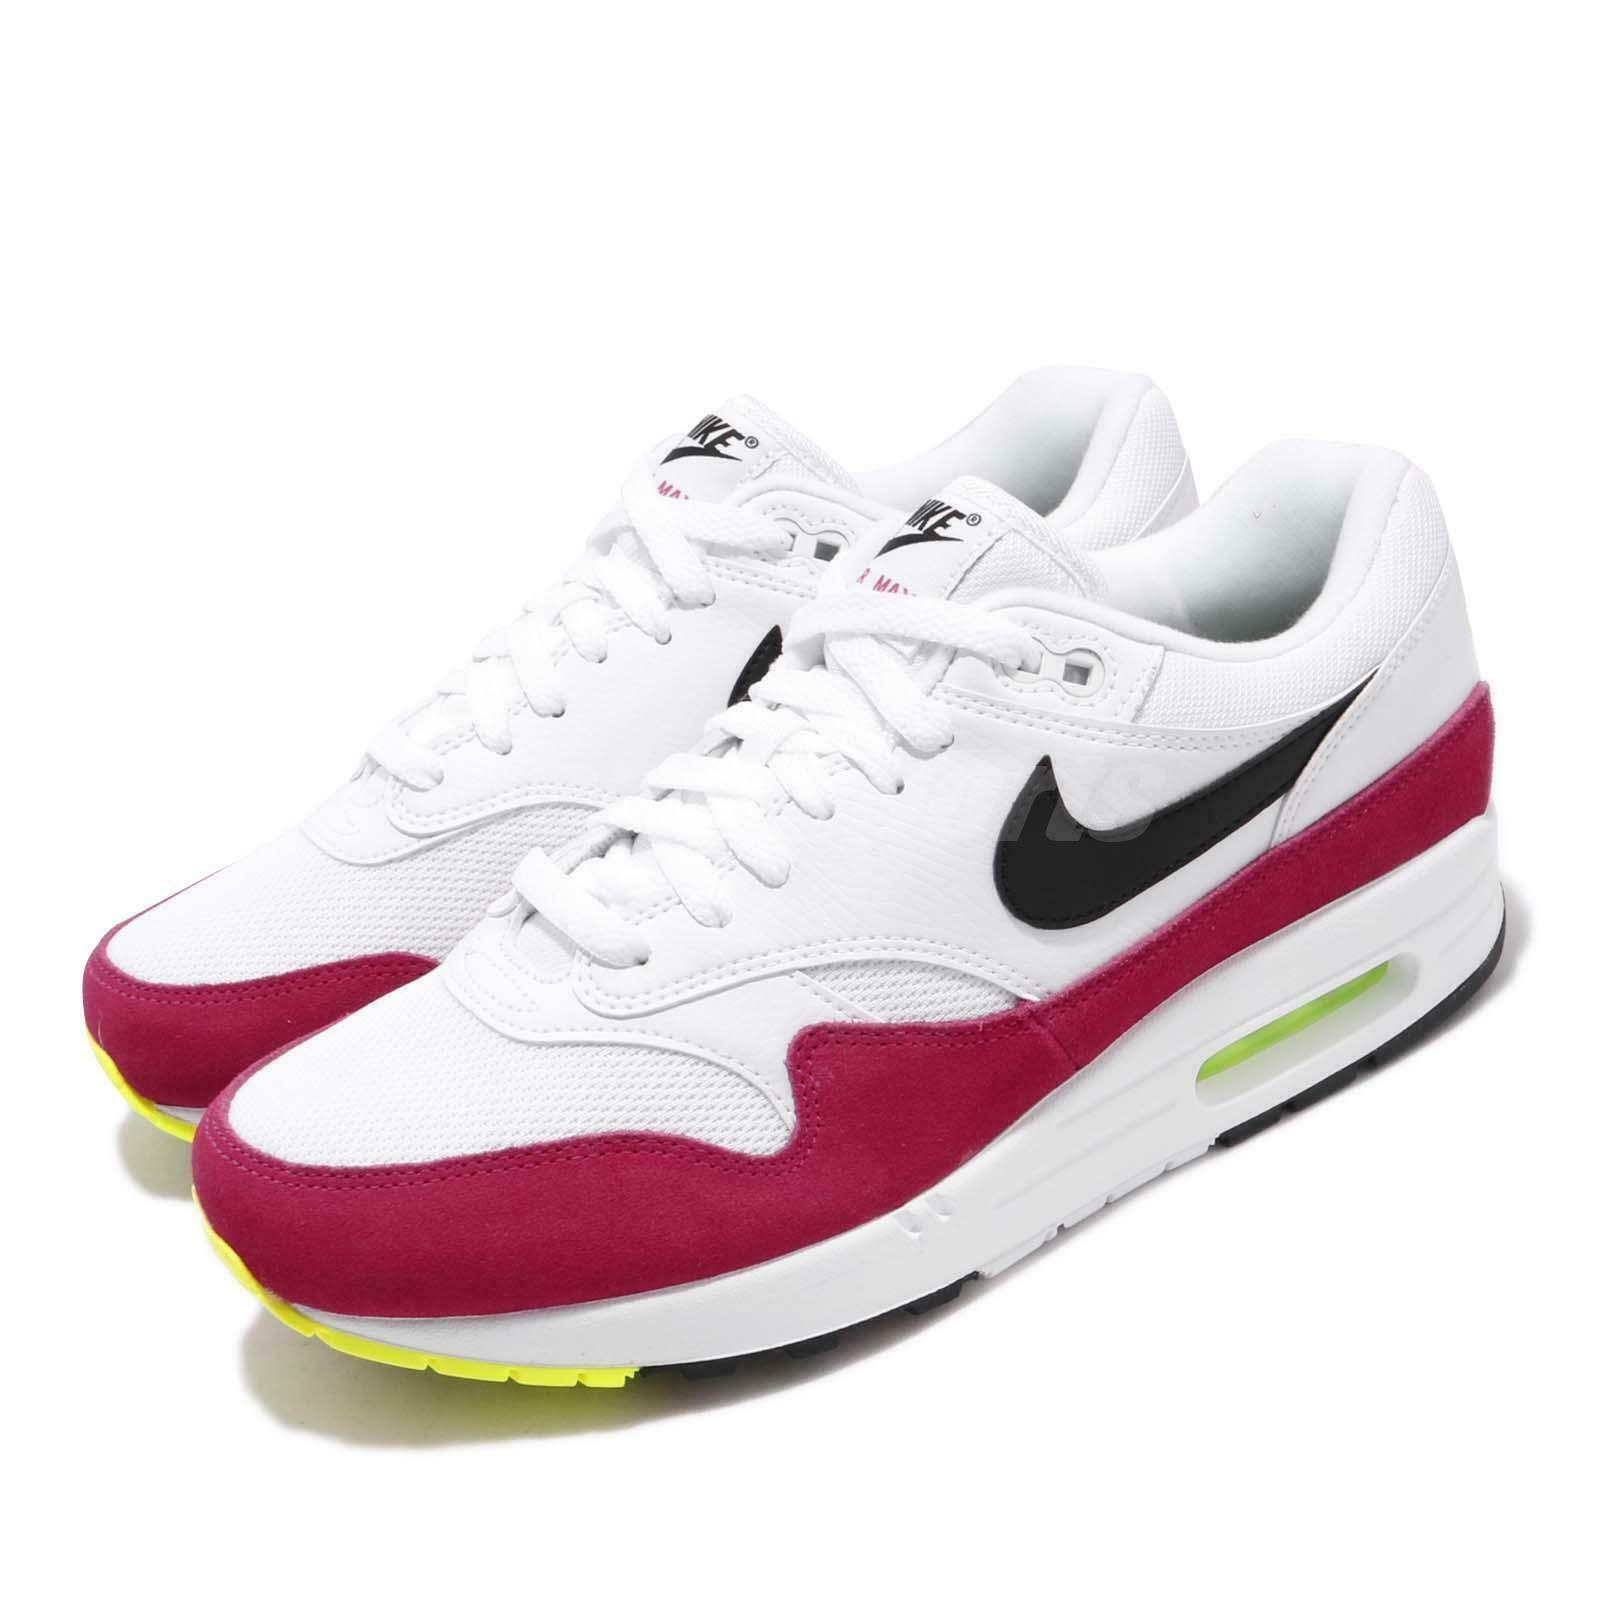 Nike Air Max 1 White Black Volt Rush Pink